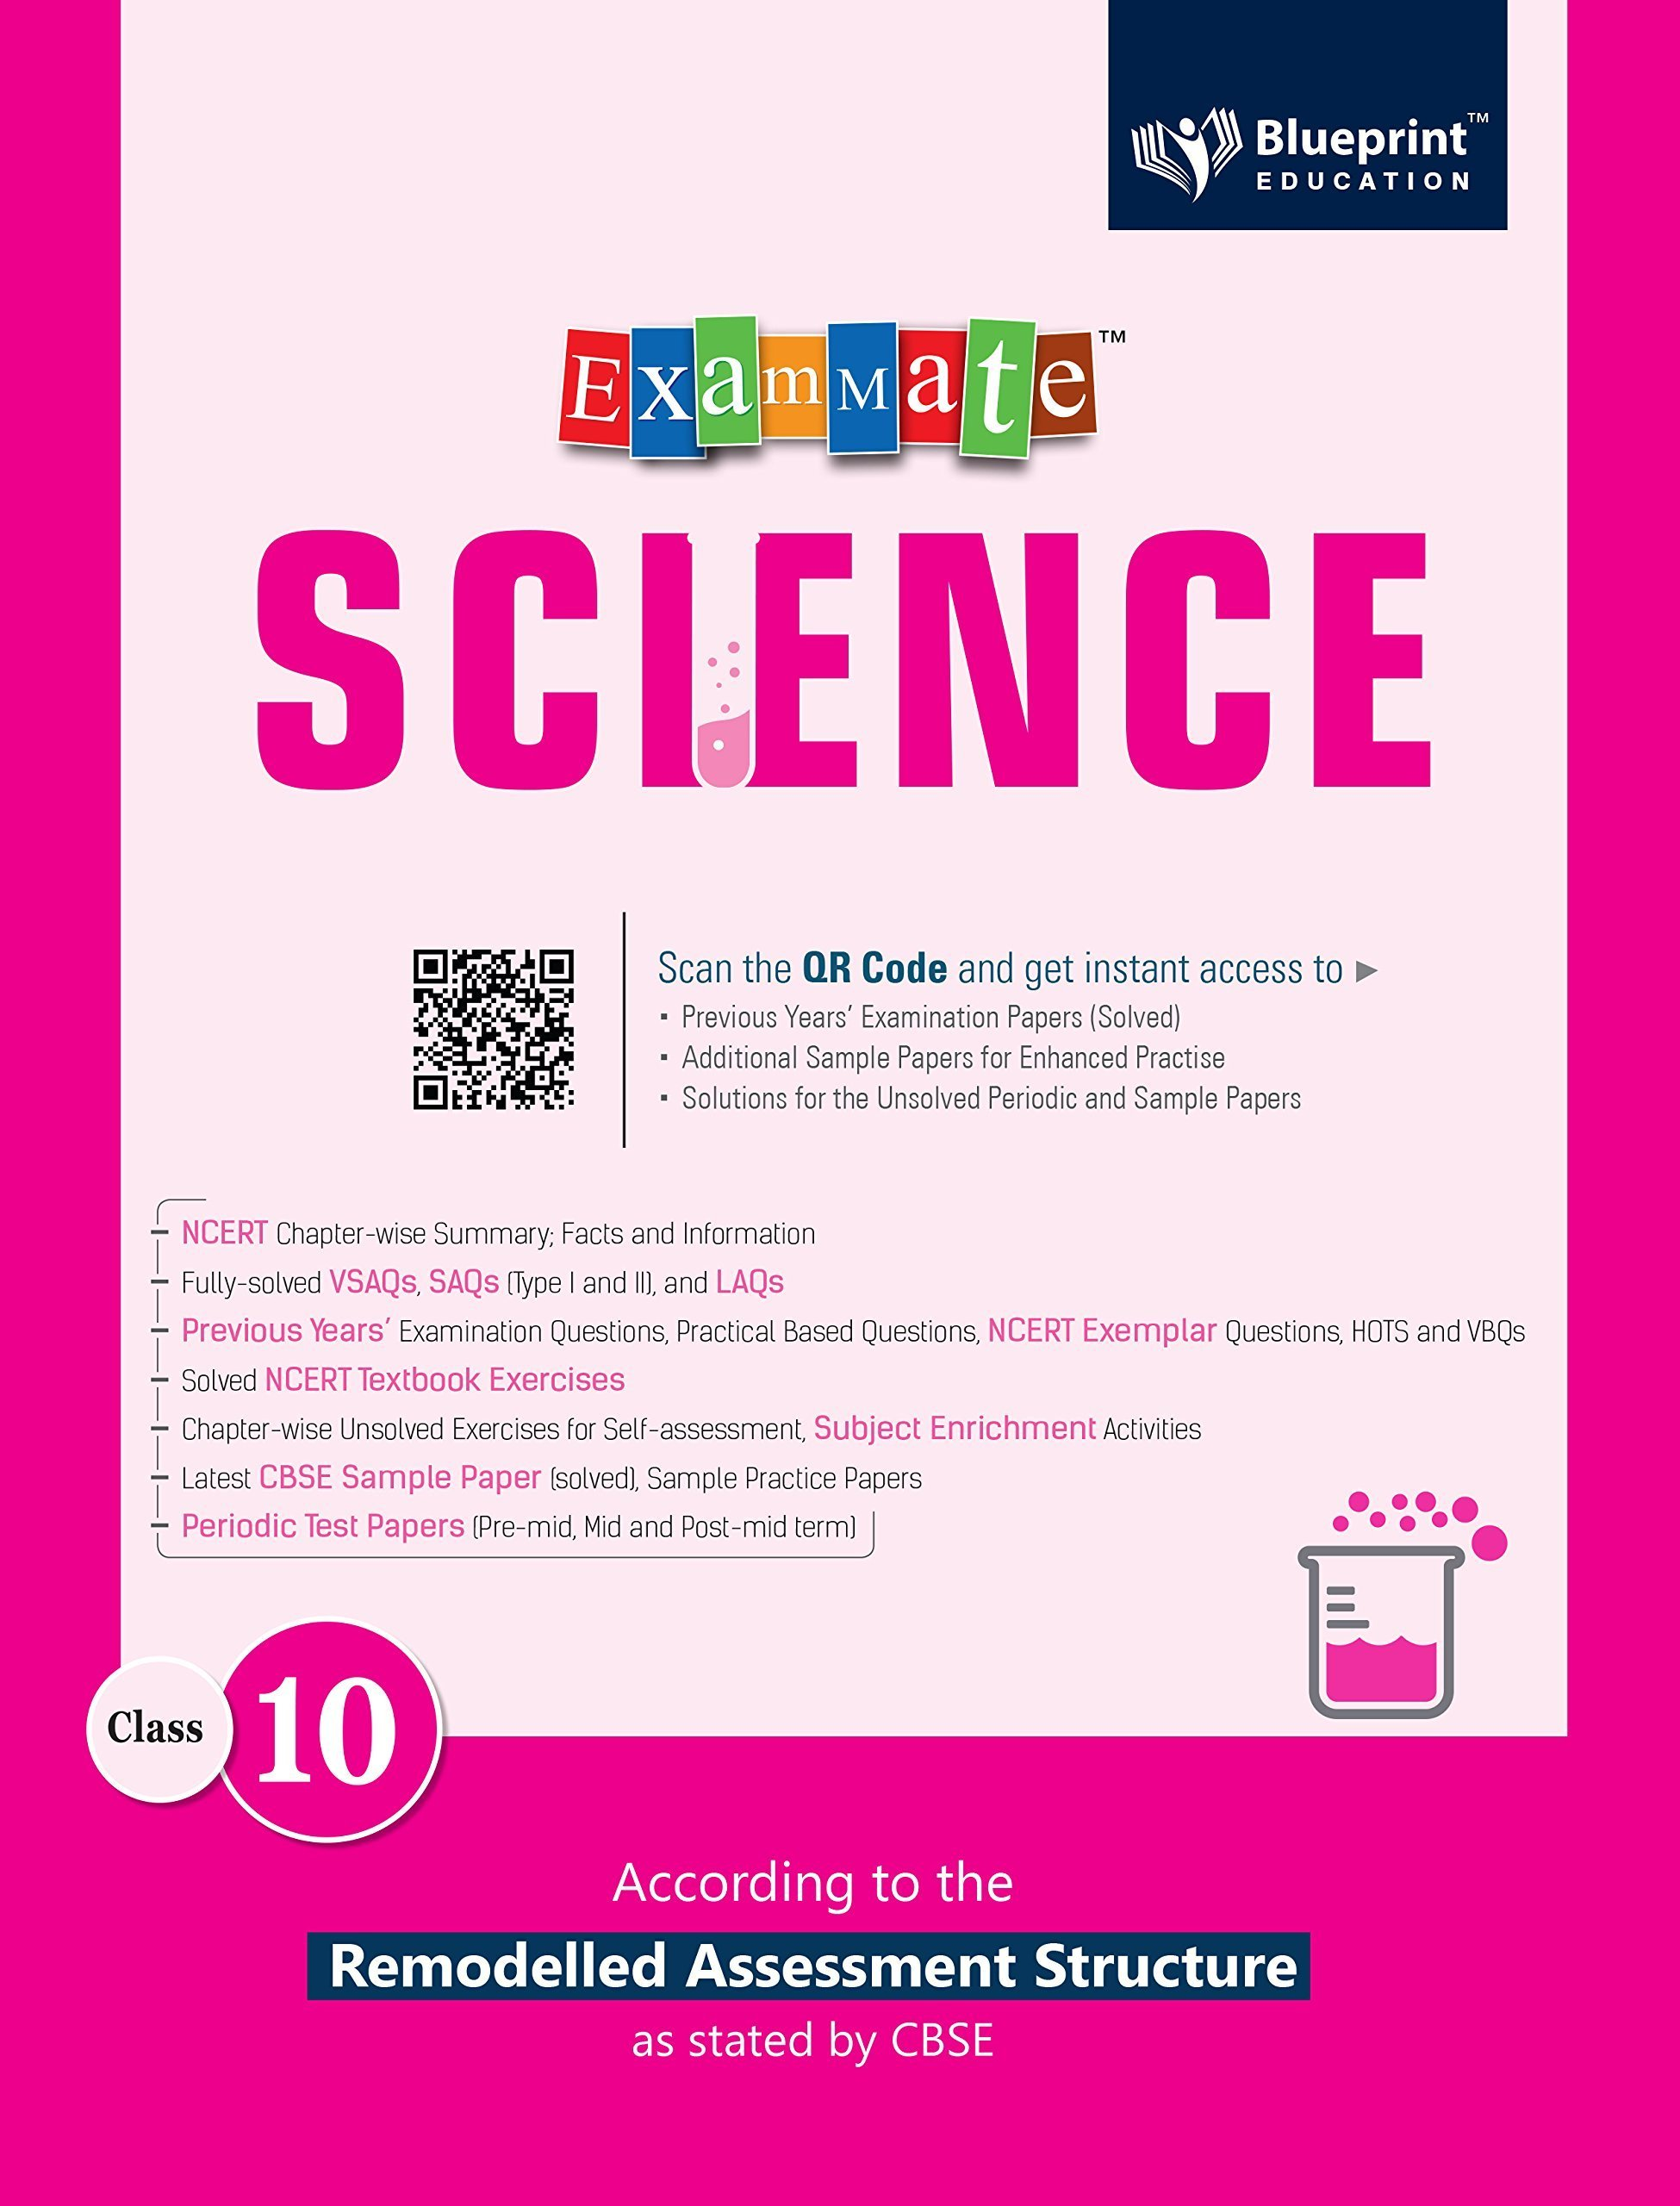 Exam mate science for class 10 for 2019 examination amazon gp exam mate science for class 10 for 2019 examination amazon gp sinha blueprint education books malvernweather Images